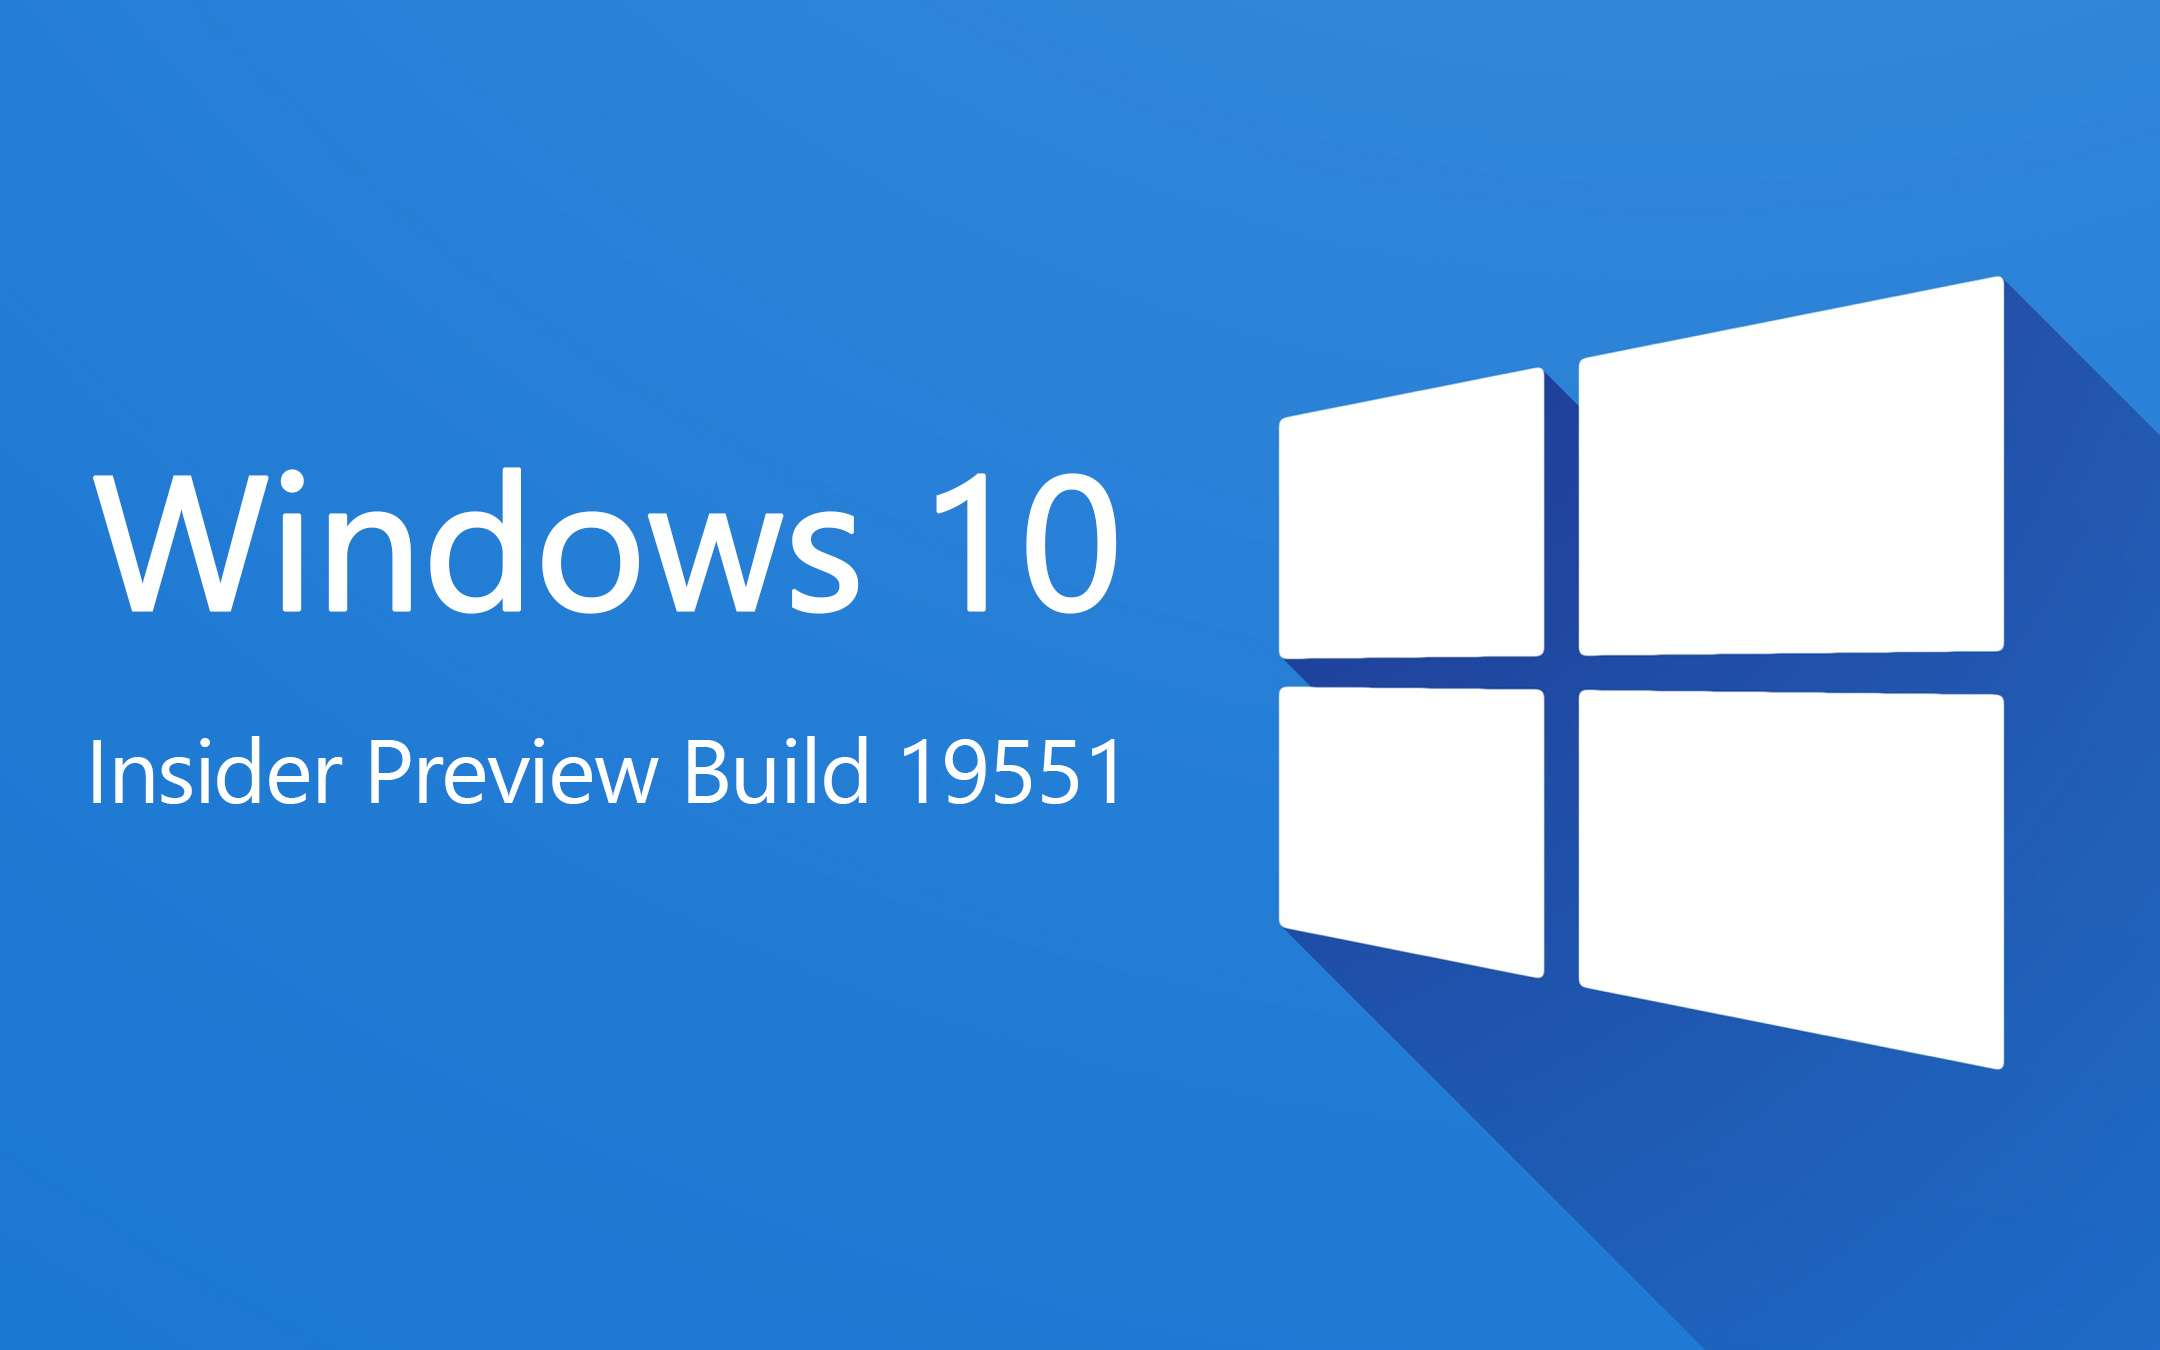 Windows 10 Insider Preview Build 19551